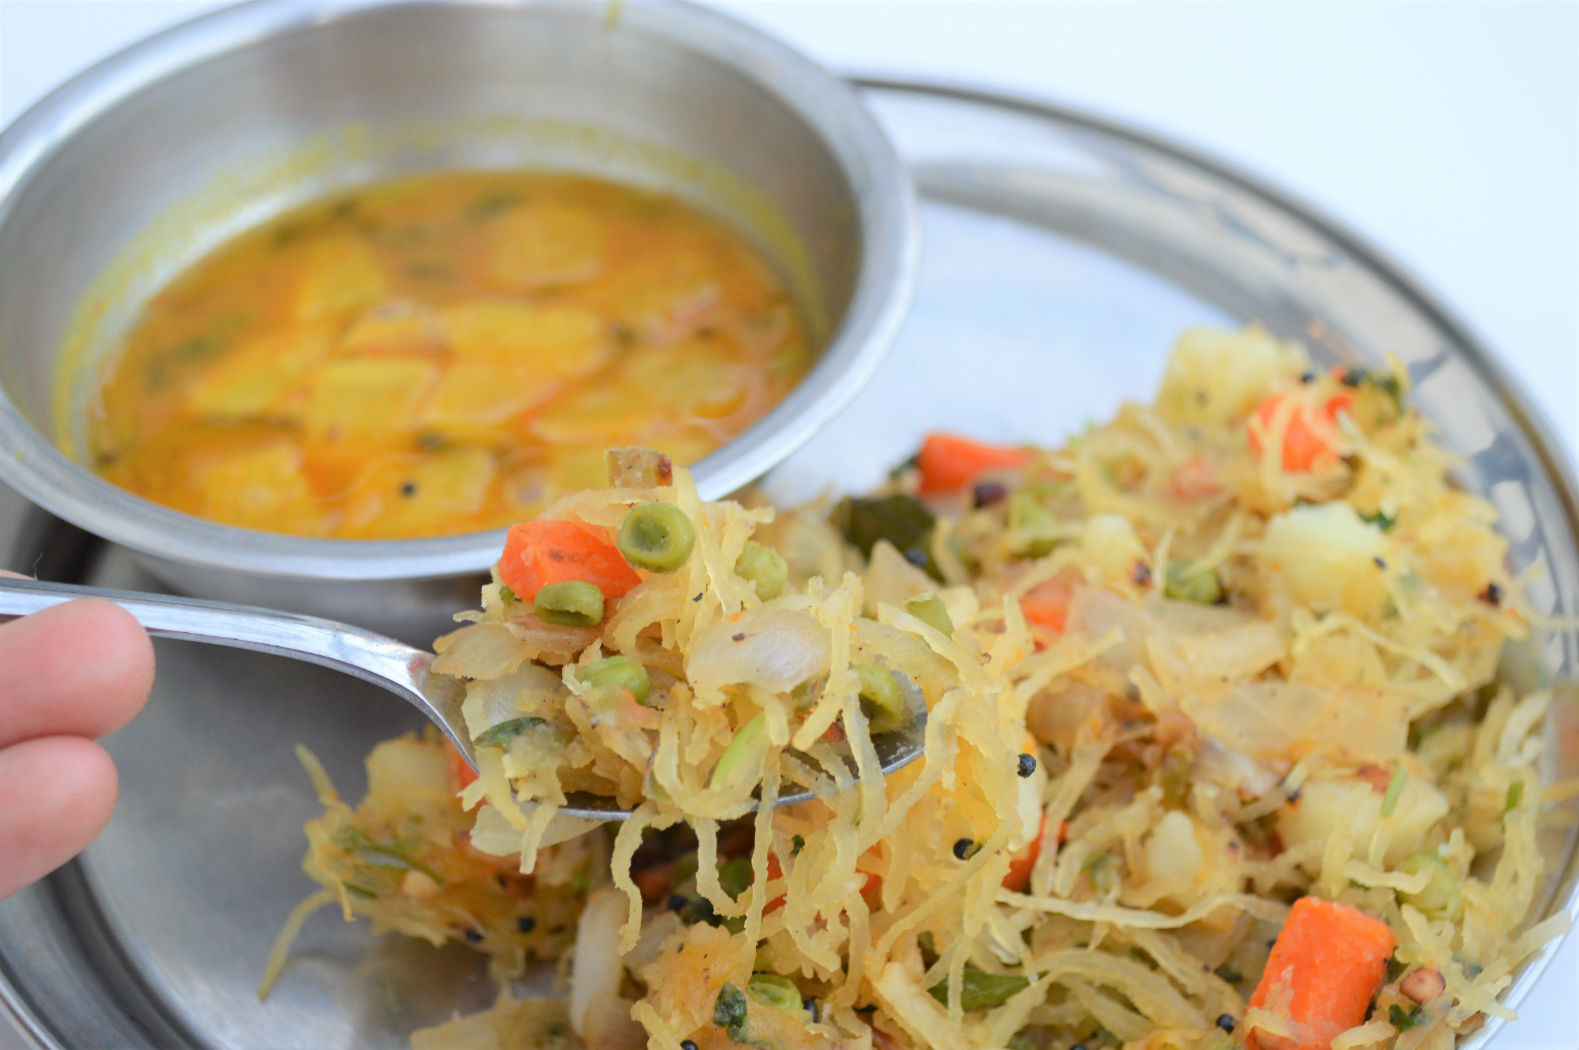 Semiya Upma Low Carb Using Spaghetti Squash Upgrade My Food